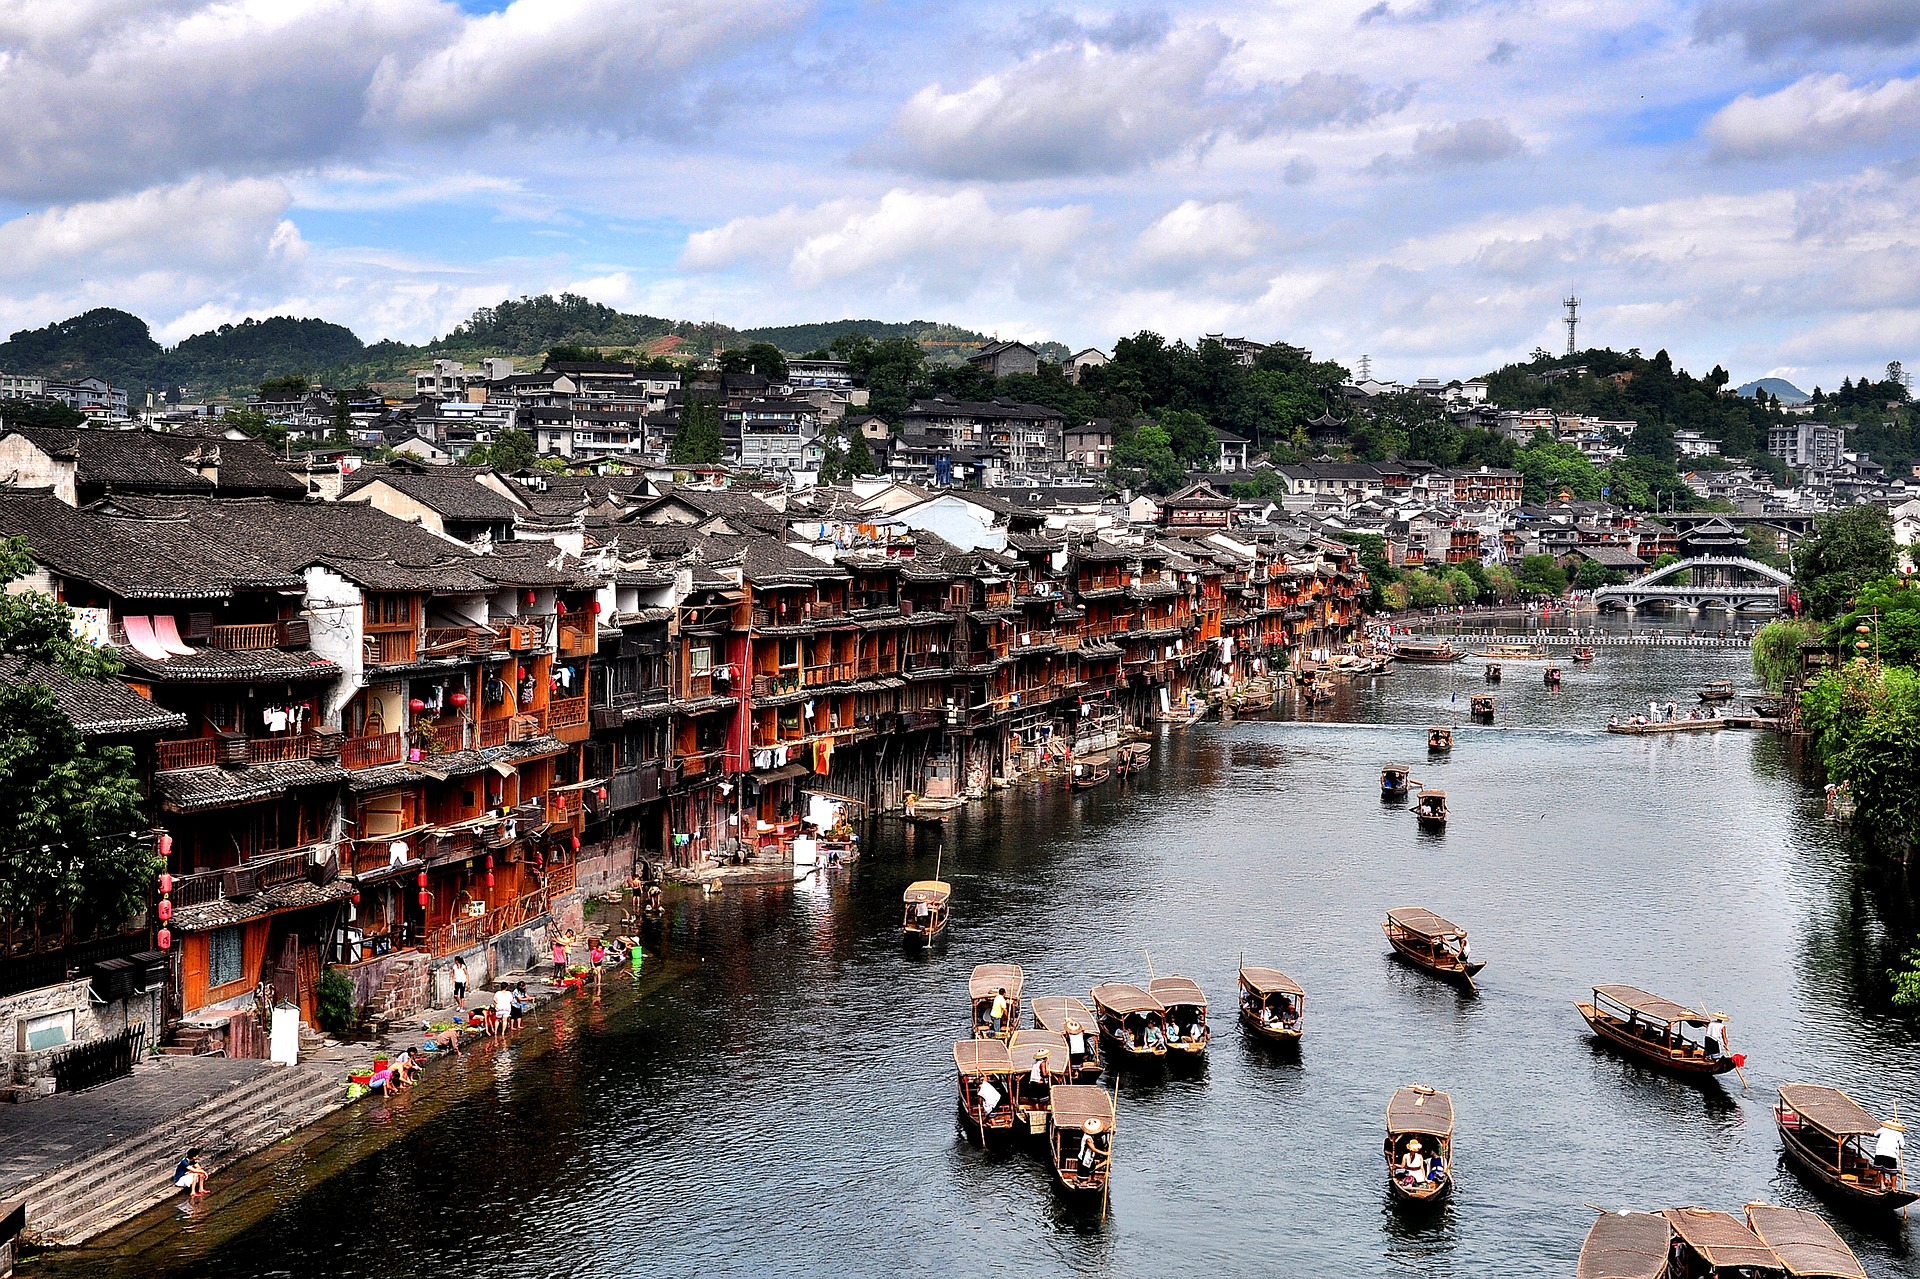 The city of Tuojiang